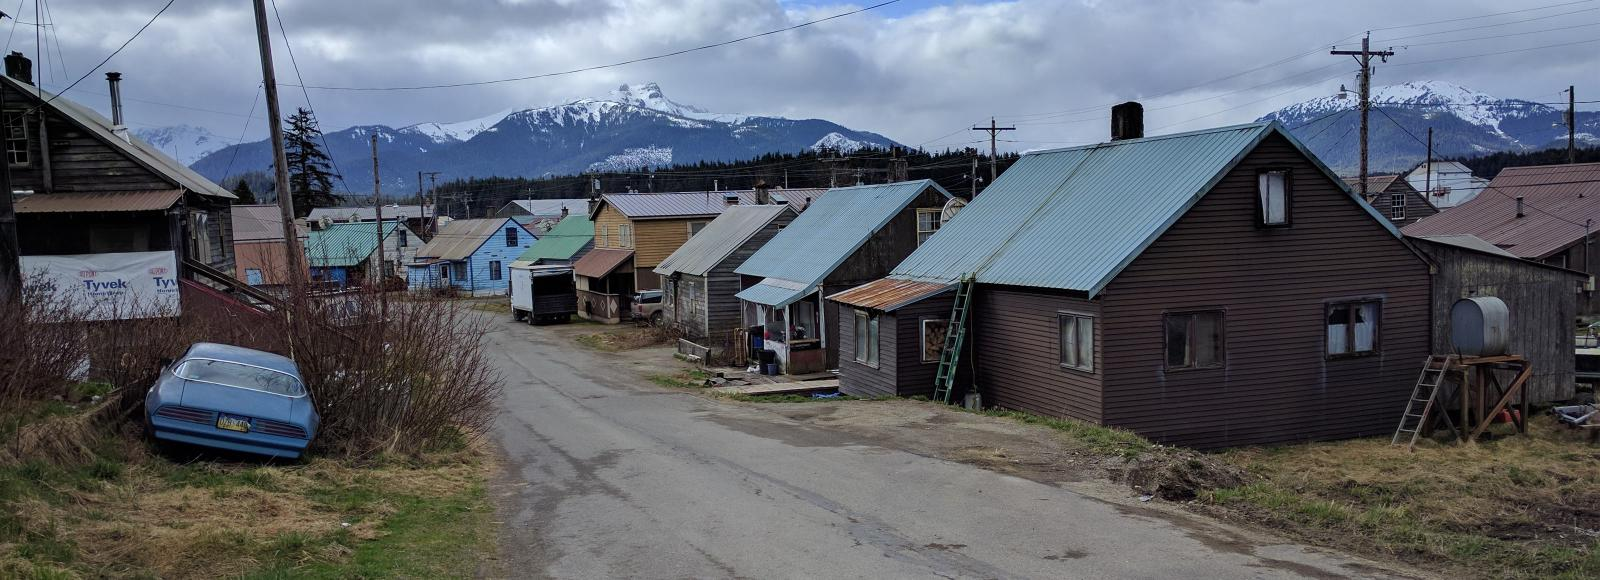 small houses and a blue broken down car line a one-lane paved road